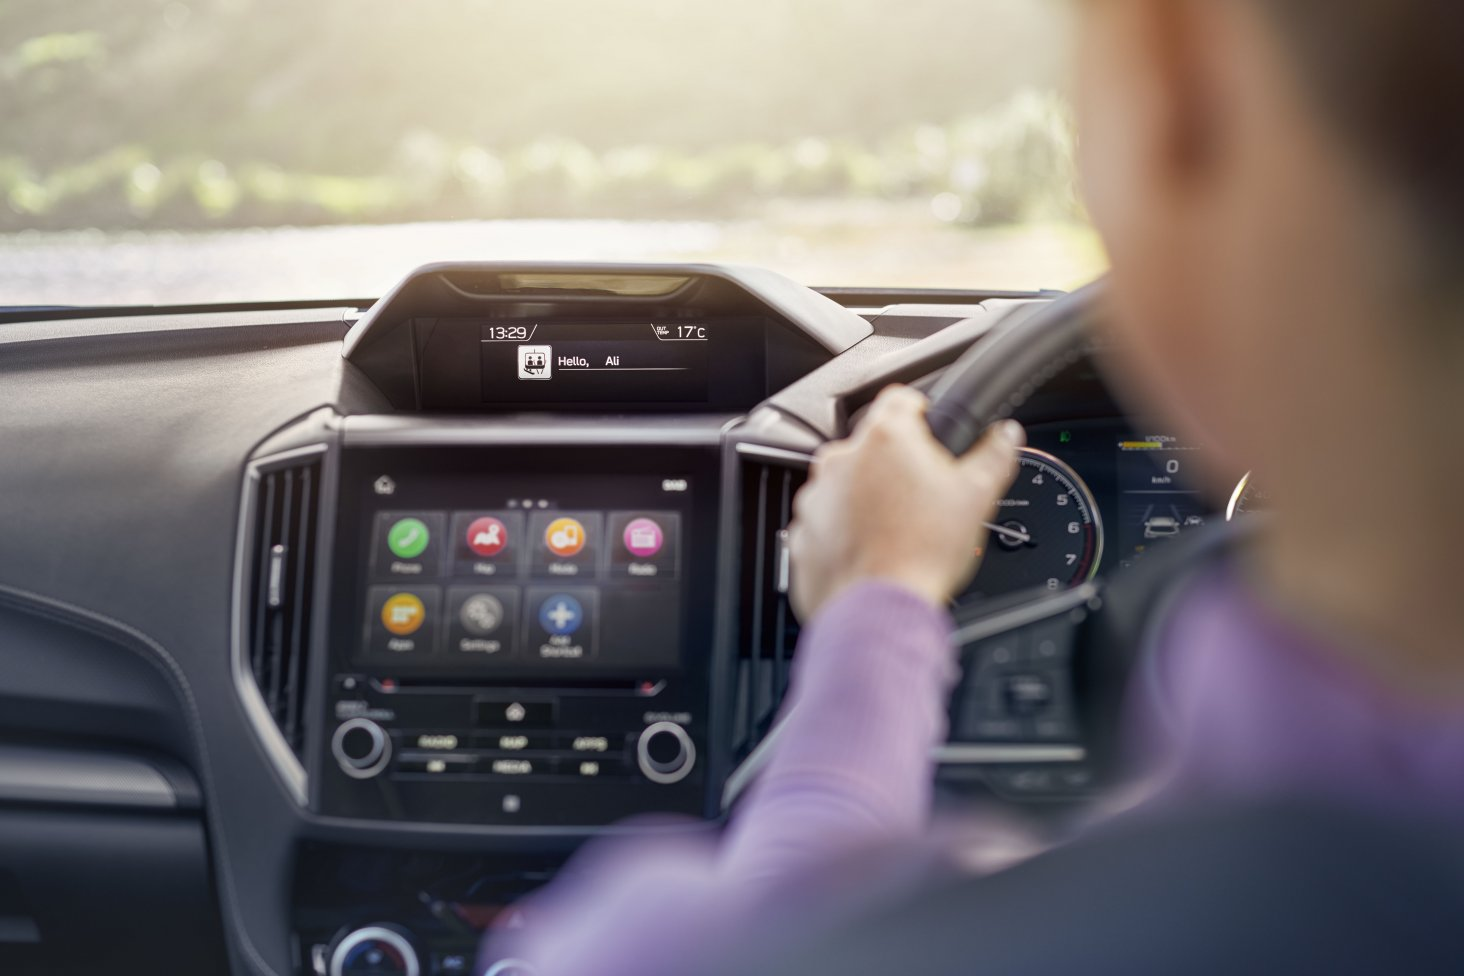 The 2019 Forester's Driver Monitoring System sets driver preferences for seat position, door mirrors, air-conditioning and some instrument displays using facial recognition technology.